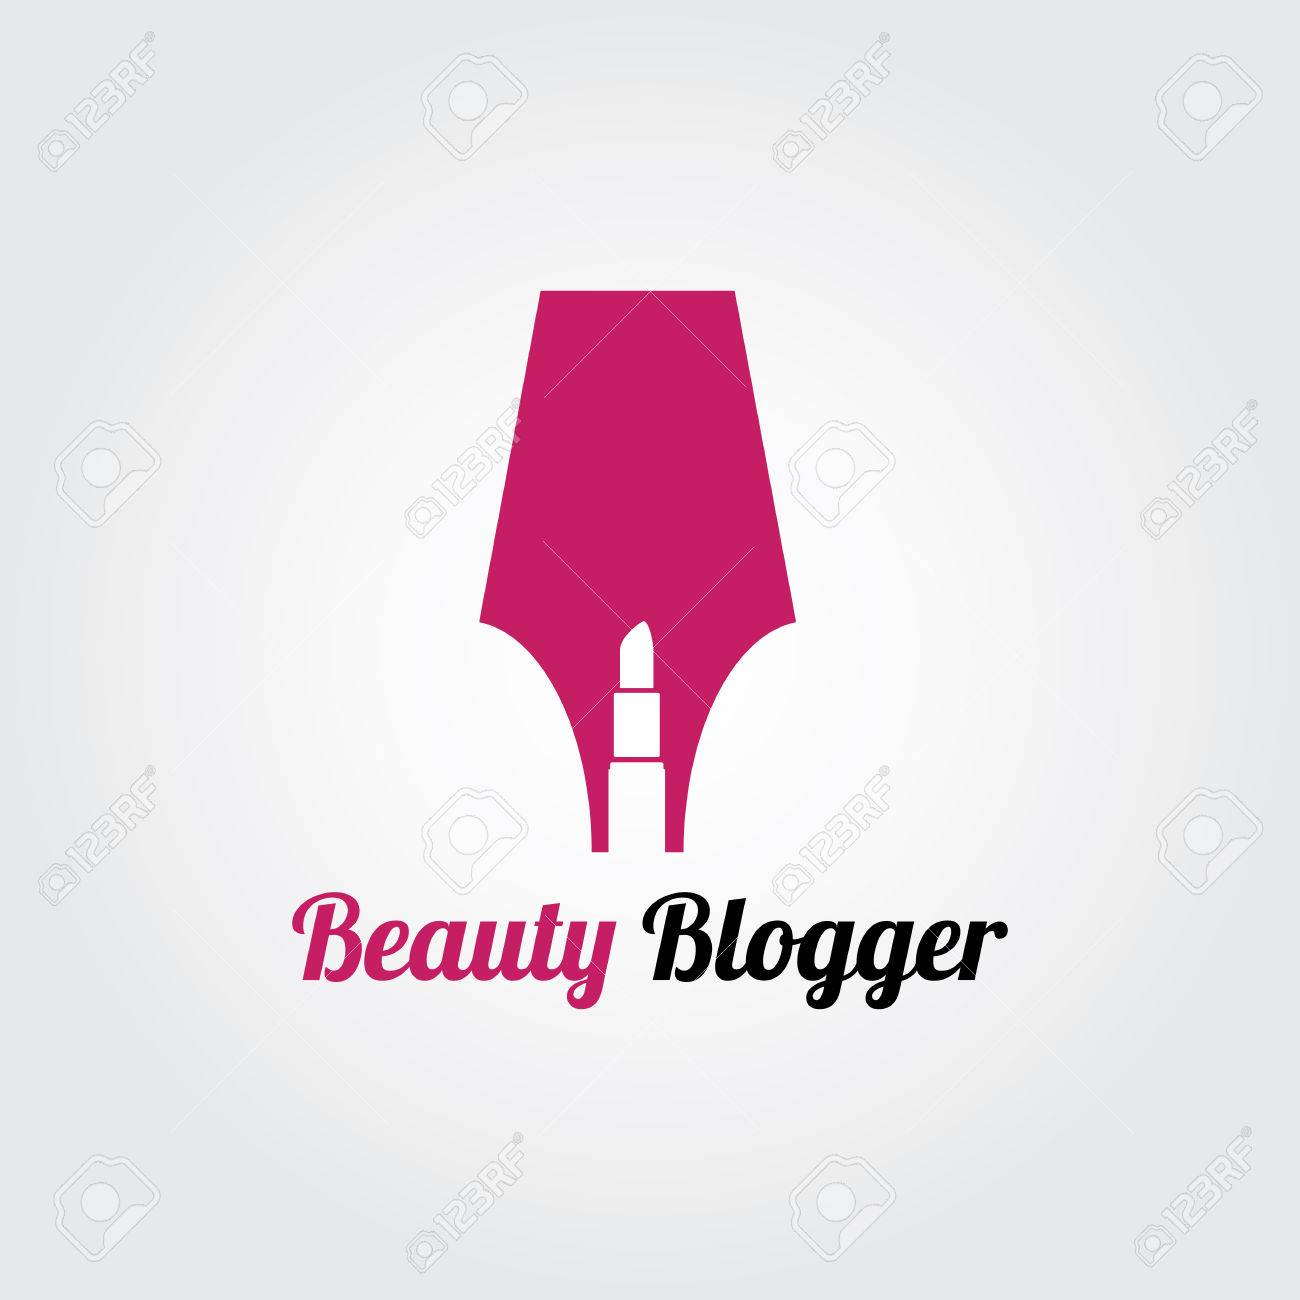 Beauty Blogger Logo Concept, Cosmetic, Makeup, Beauty Salon ...